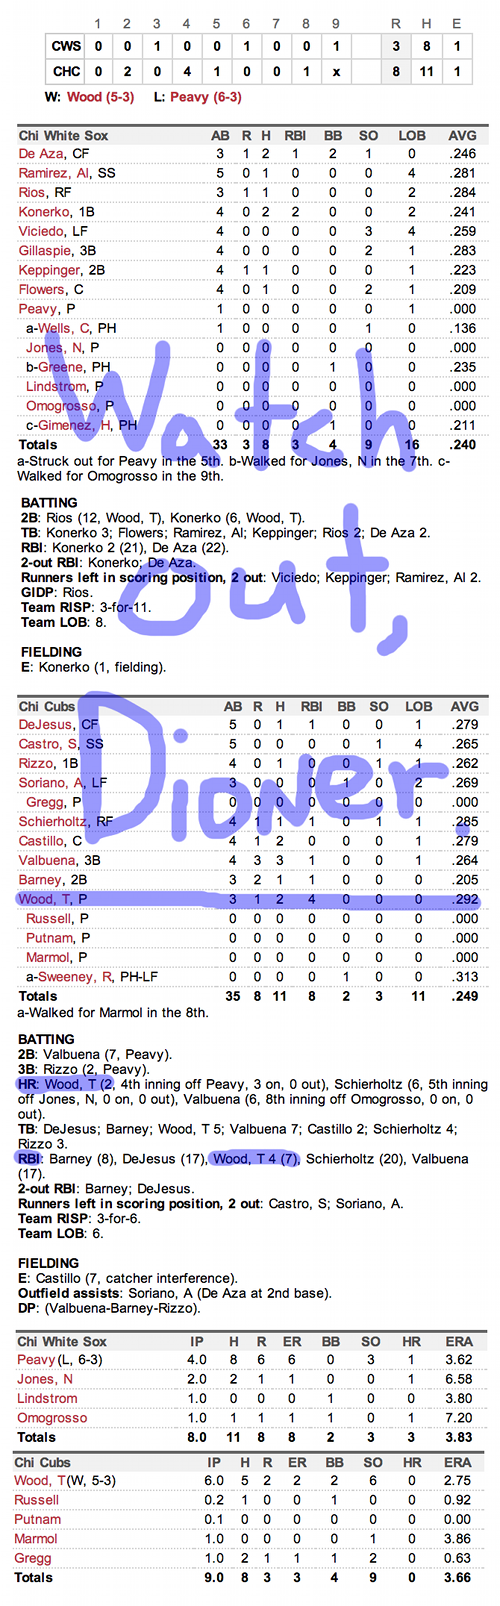 Enhanced Box Score: White Sox 3, Cubs 8 – May 30, 2013